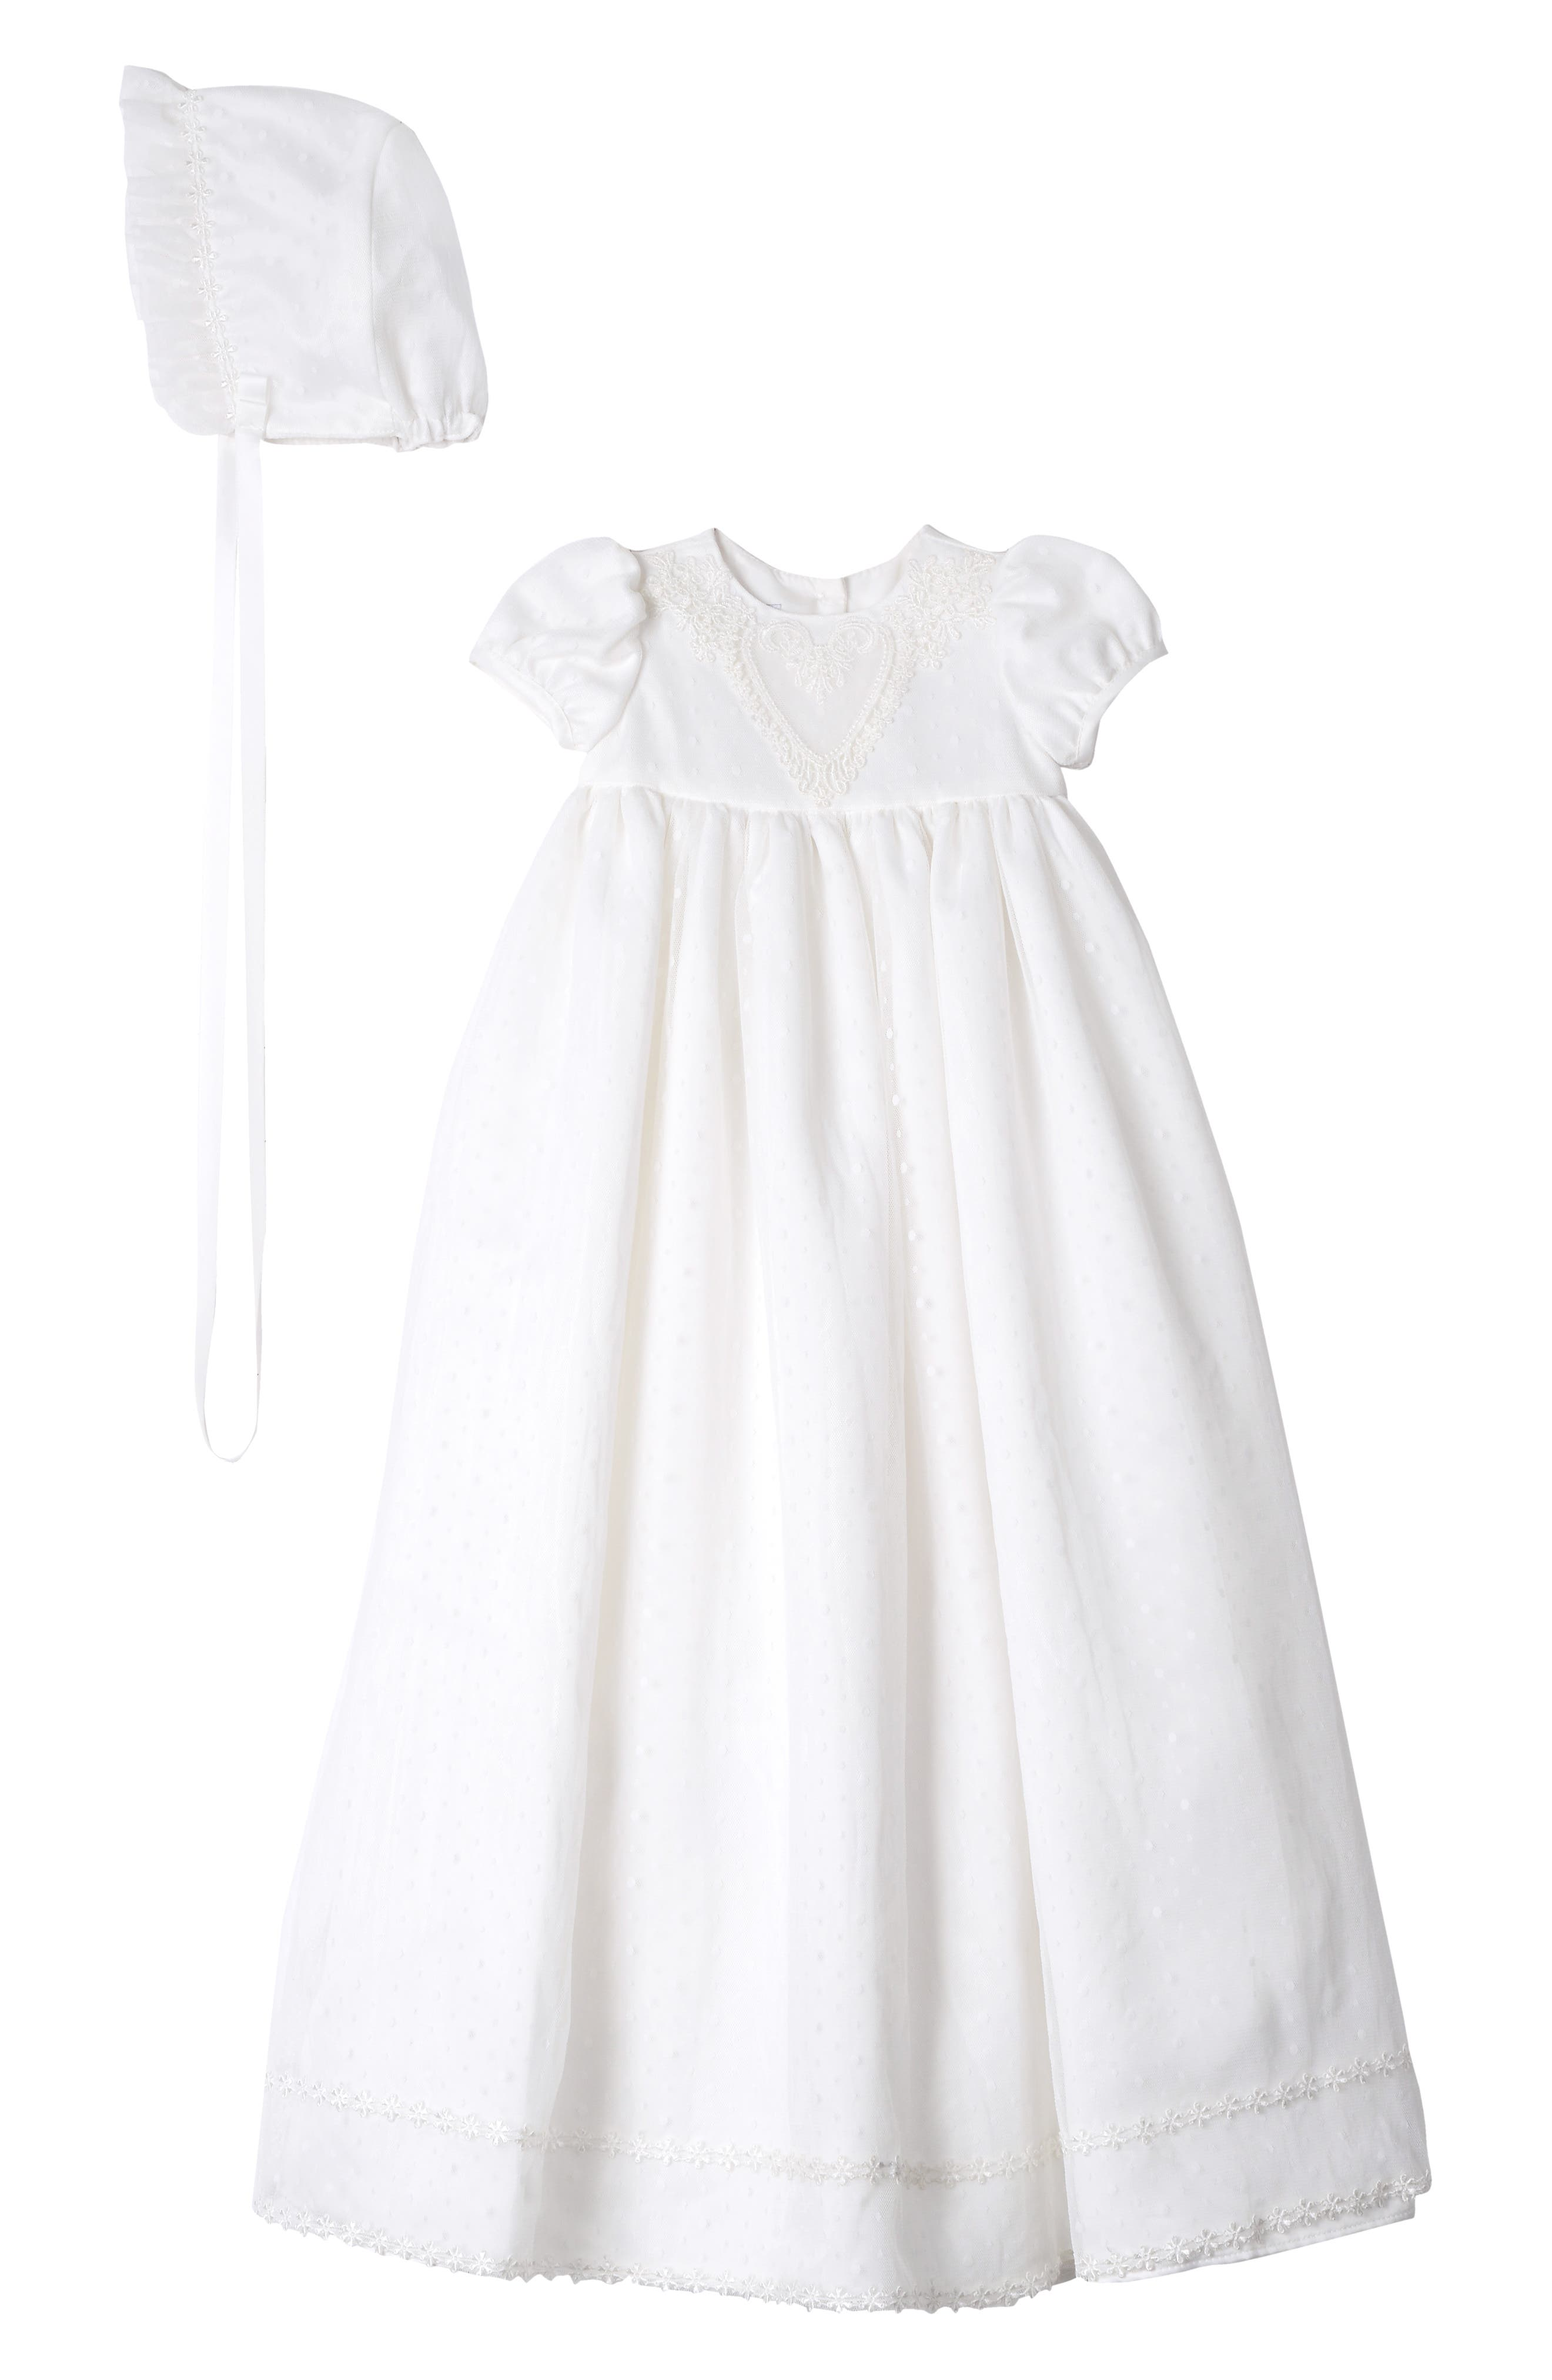 PIPPA & JULIE, Point Desprit Embroidered Heart Christening Gown & Bonnet, Main thumbnail 1, color, WHITE